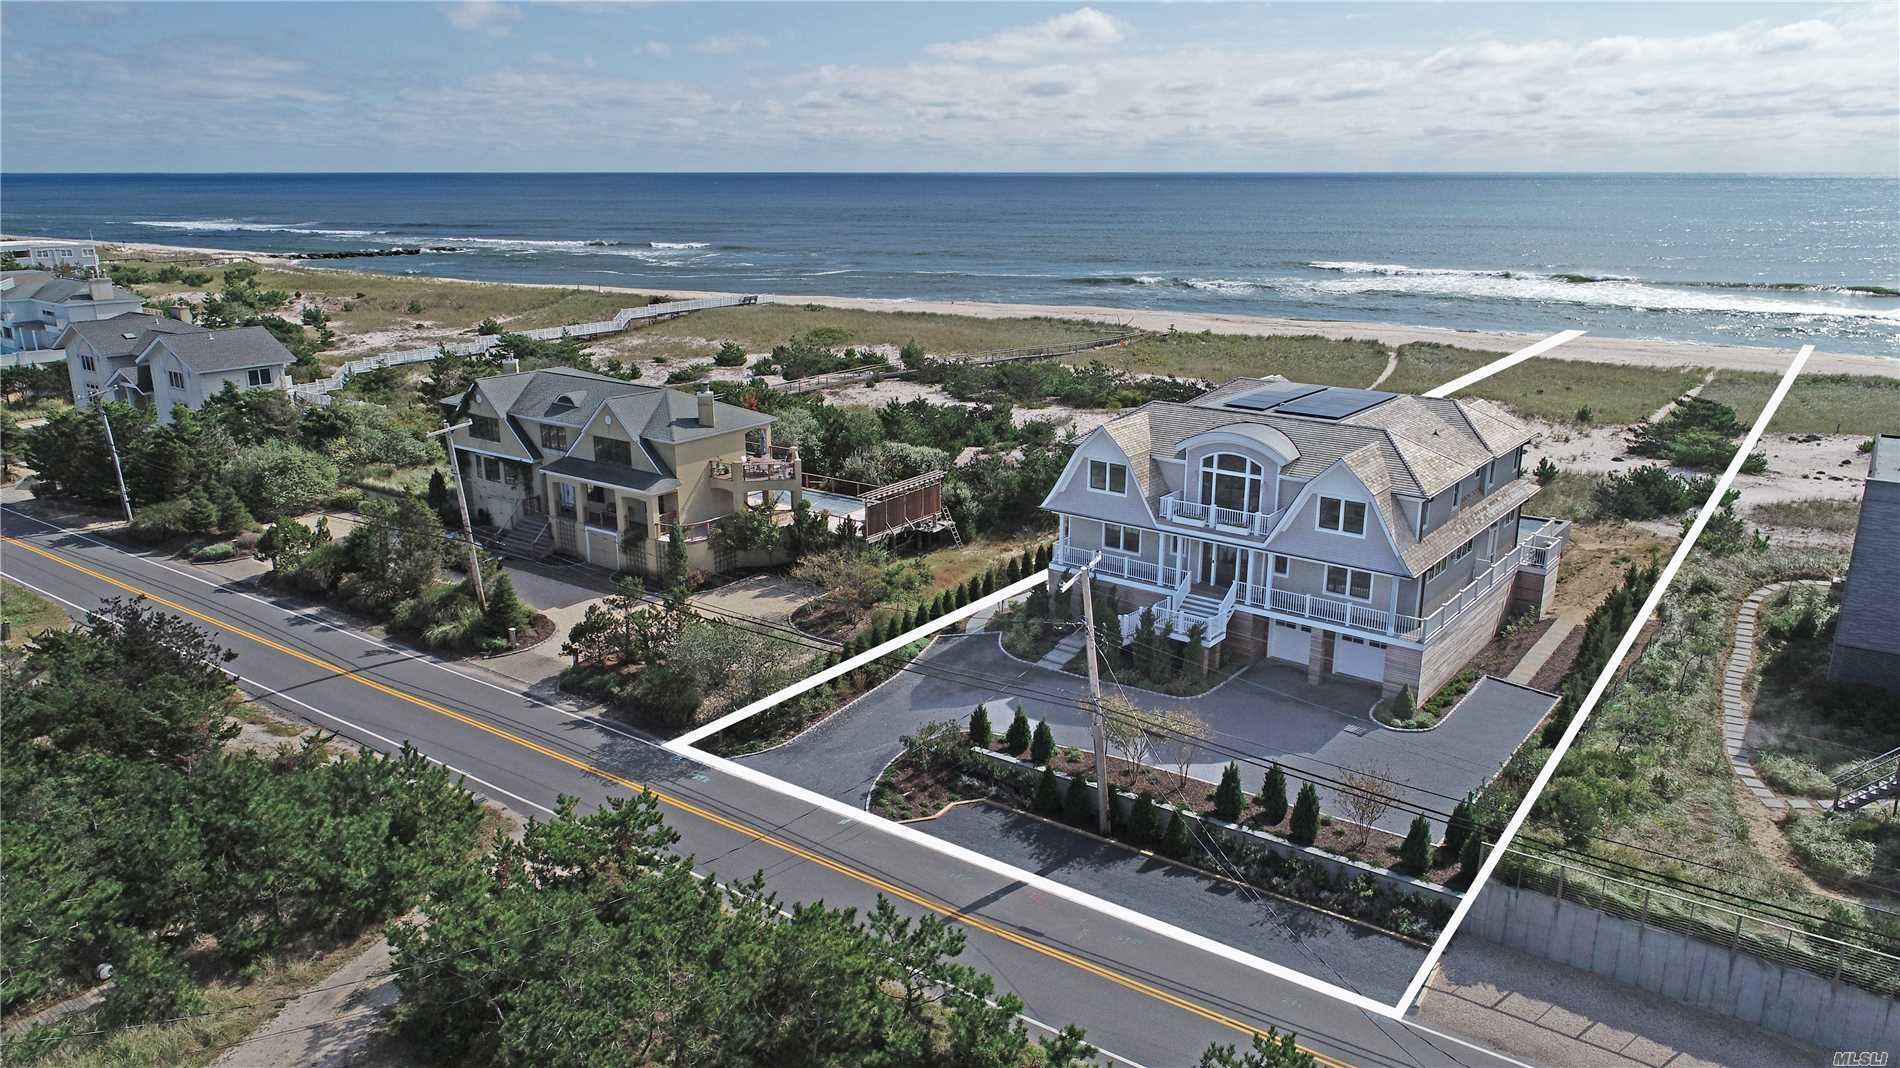 Post Modern Oceanfront 5000 Square Feet, 100 Ft Frontage. 1st Flr Vaulted Foyer W Custom Woodworking, Kit, Living Rm, Dining Rm, ? Bath, & 2 Guest Beds Both W Baths. 2nd Flr W Water Views, 3 Guest Beds 3 Baths, & An Oversized Master W Full Bath & Ocean Side Balcony. Outside You'll Find Manicured Grounds, Multiple Sitting/Deck Areas, & Ocean Side Gunite Pool.